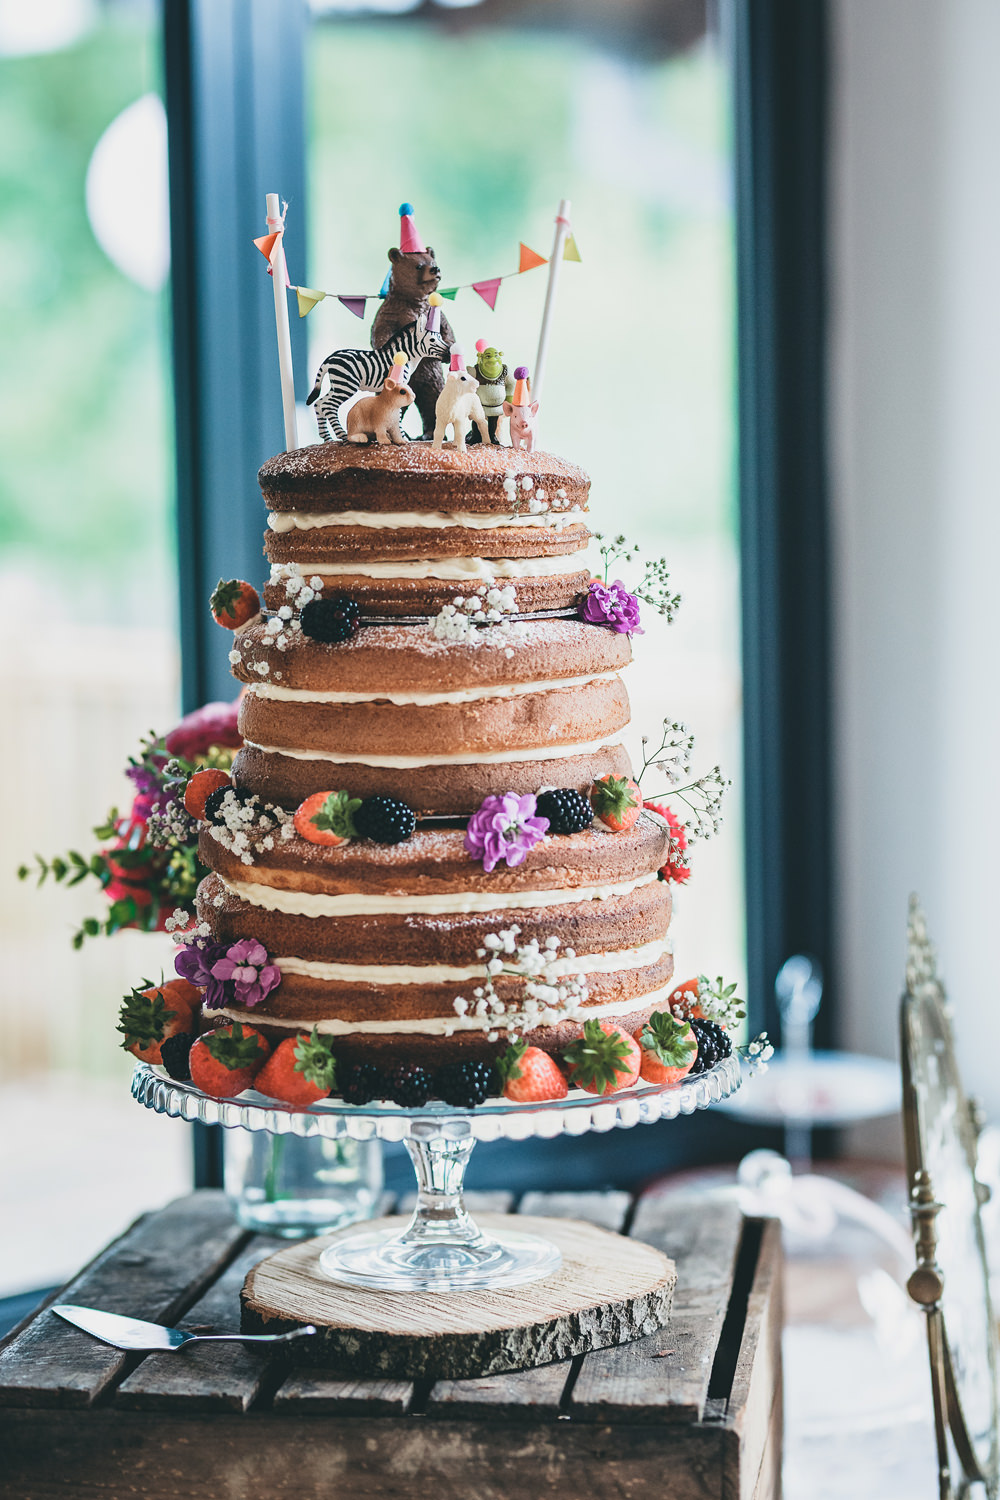 Naked Cake Layer Sponge Flowers Berries Rock Village Hall Wedding Lucie Hamilton Photography